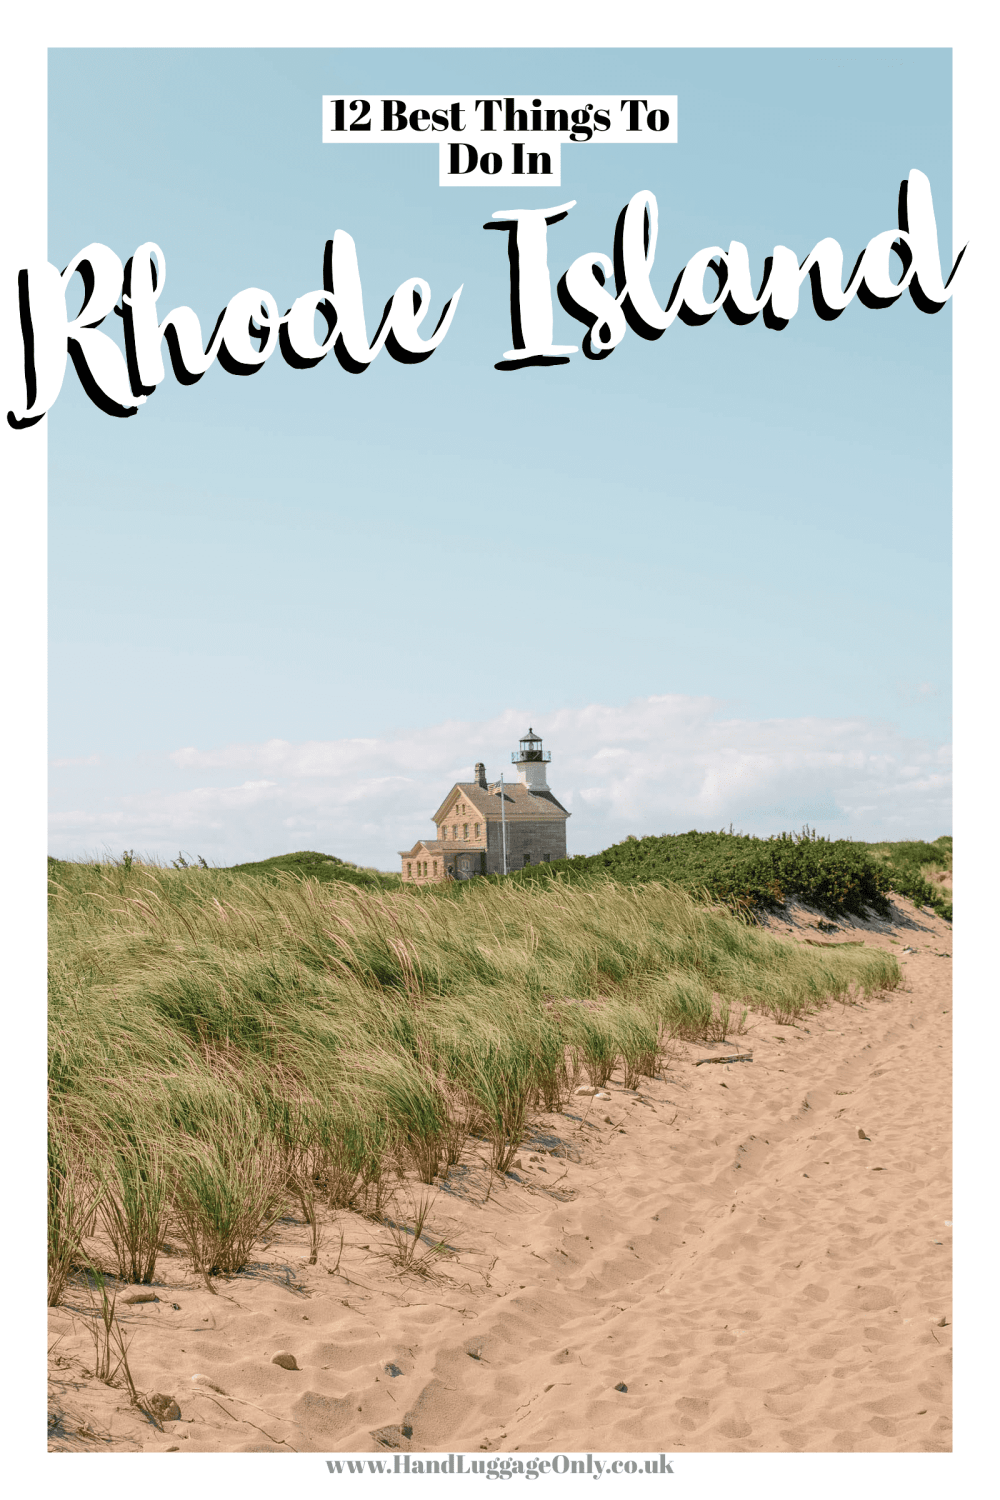 Best Things To Do In Rhode Island